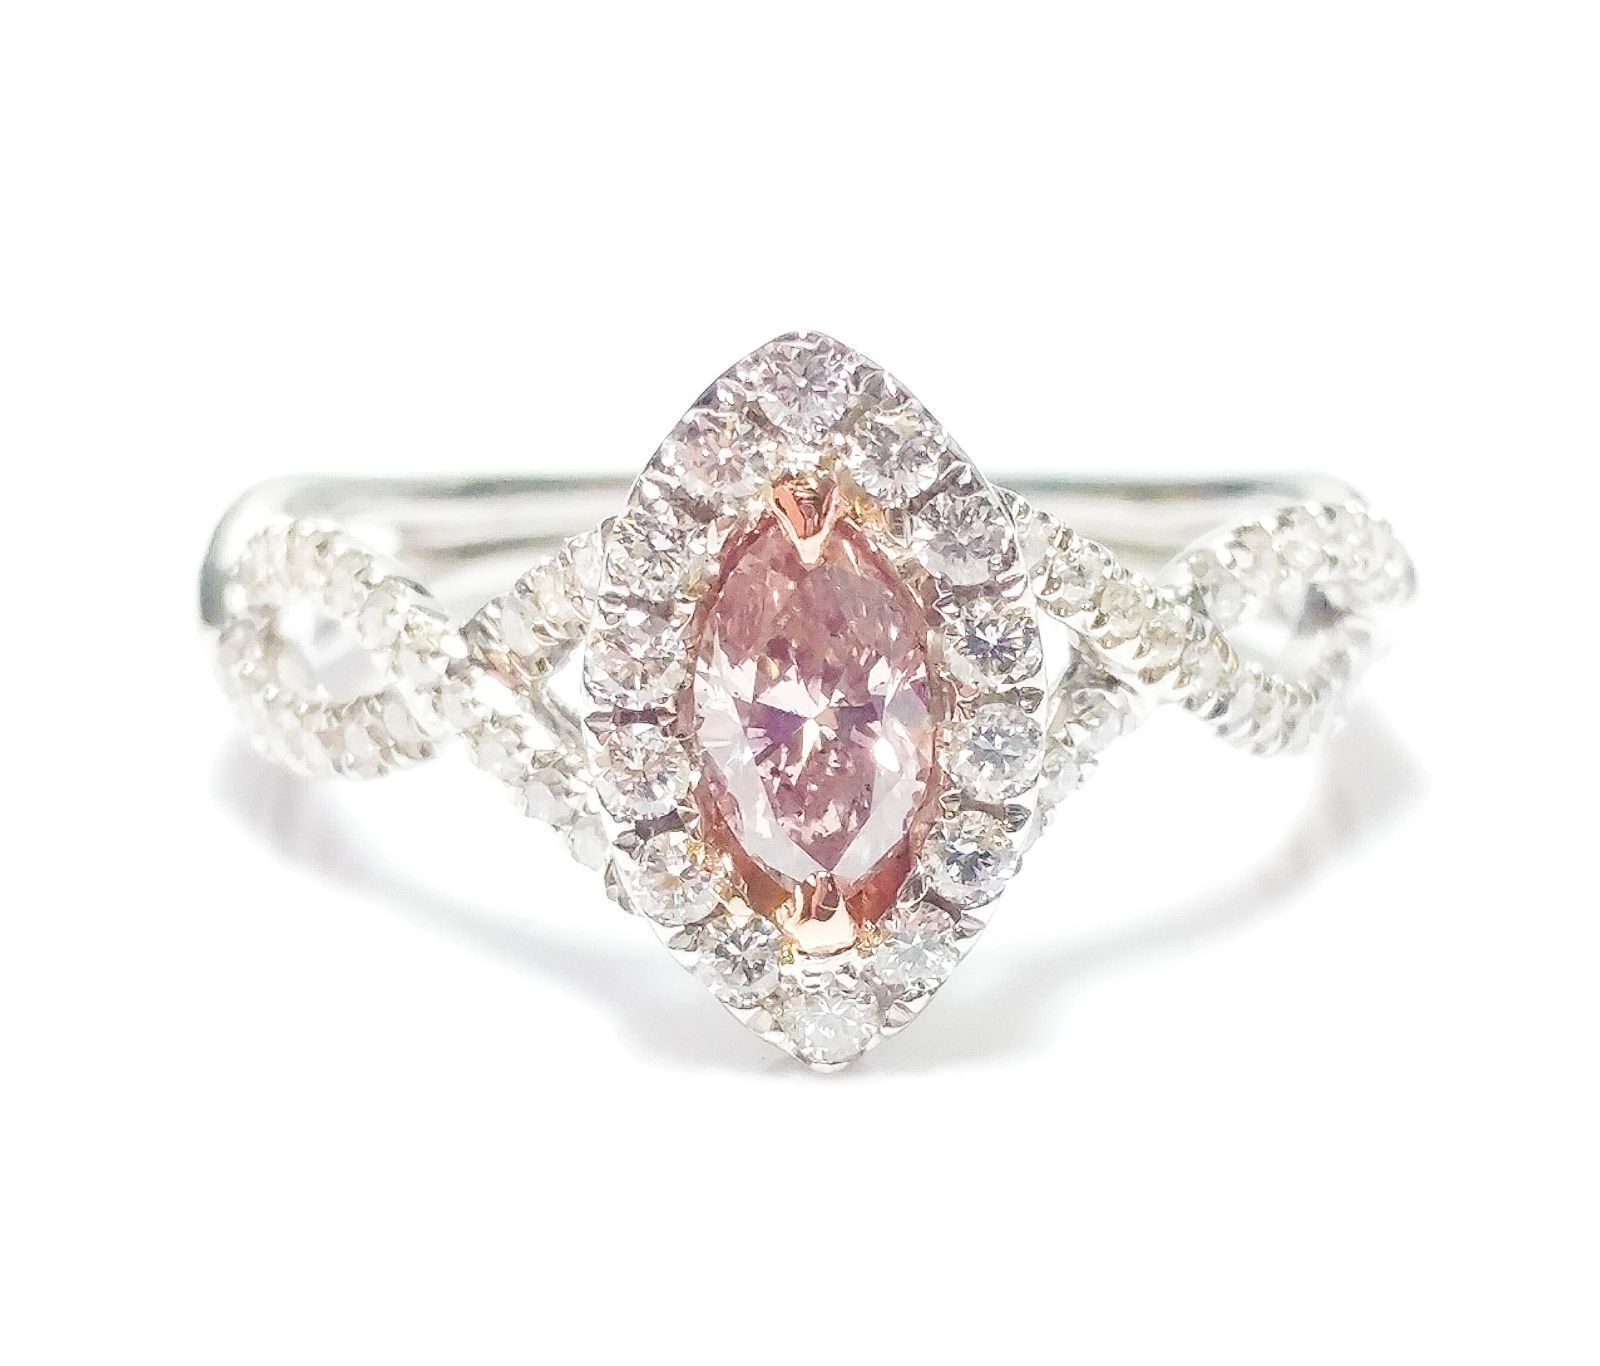 0.86ct Fancy Pink Diamond Engagement Ring GIA Marquise Hallo 18K White Gold Si1 3